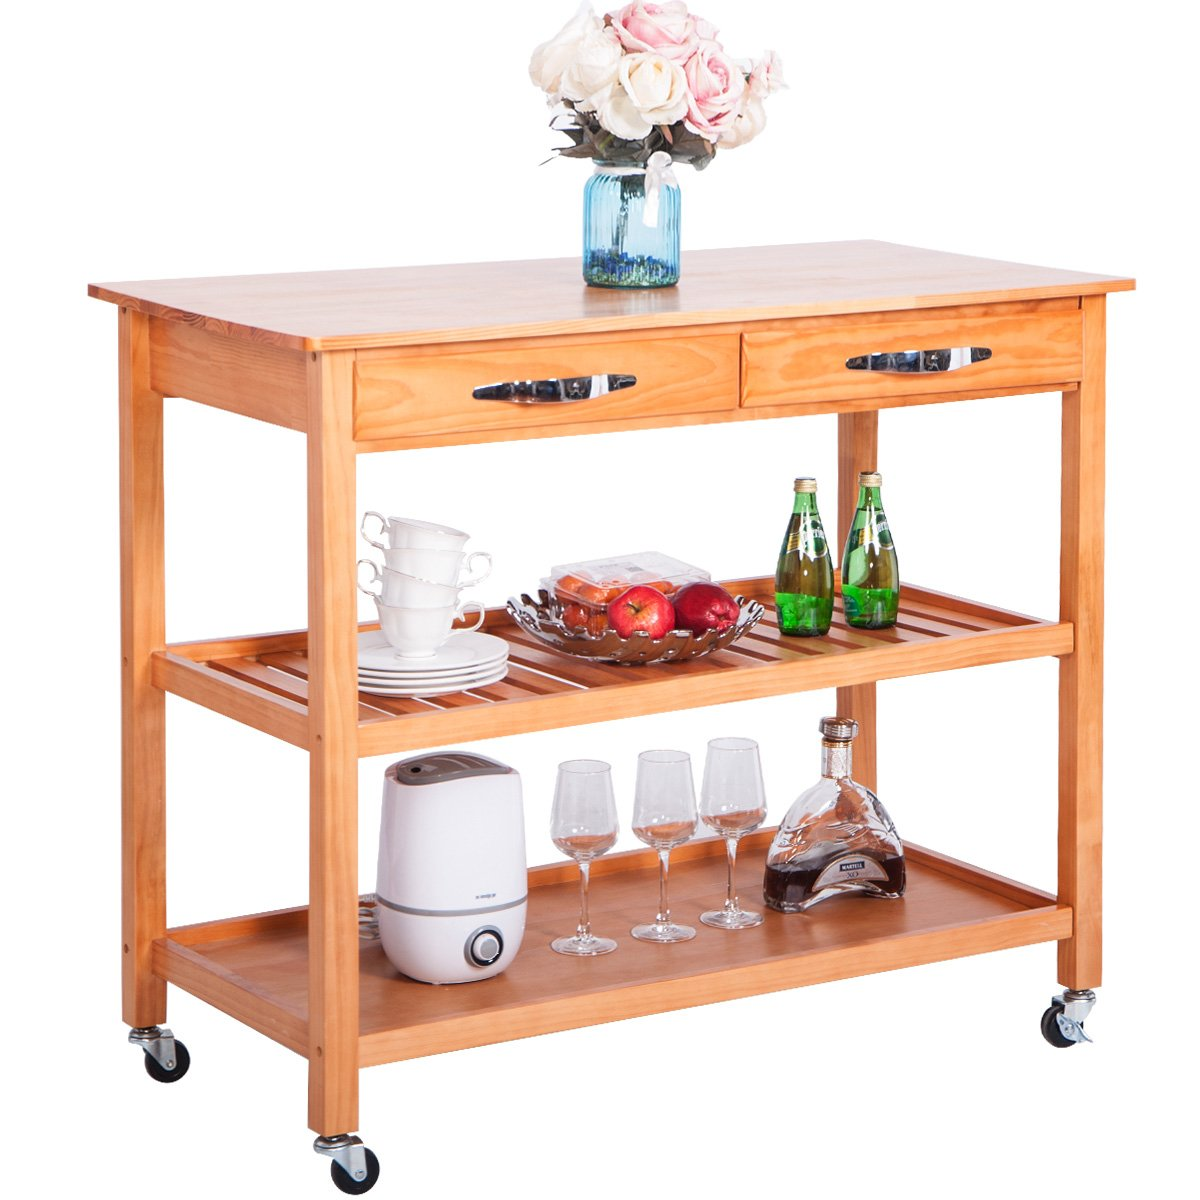 Harper&Bright Designs with Drawers & Shelves (Walnut) Kitchen Dining Trolley Cart by Harper&Bright Designs (Image #1)